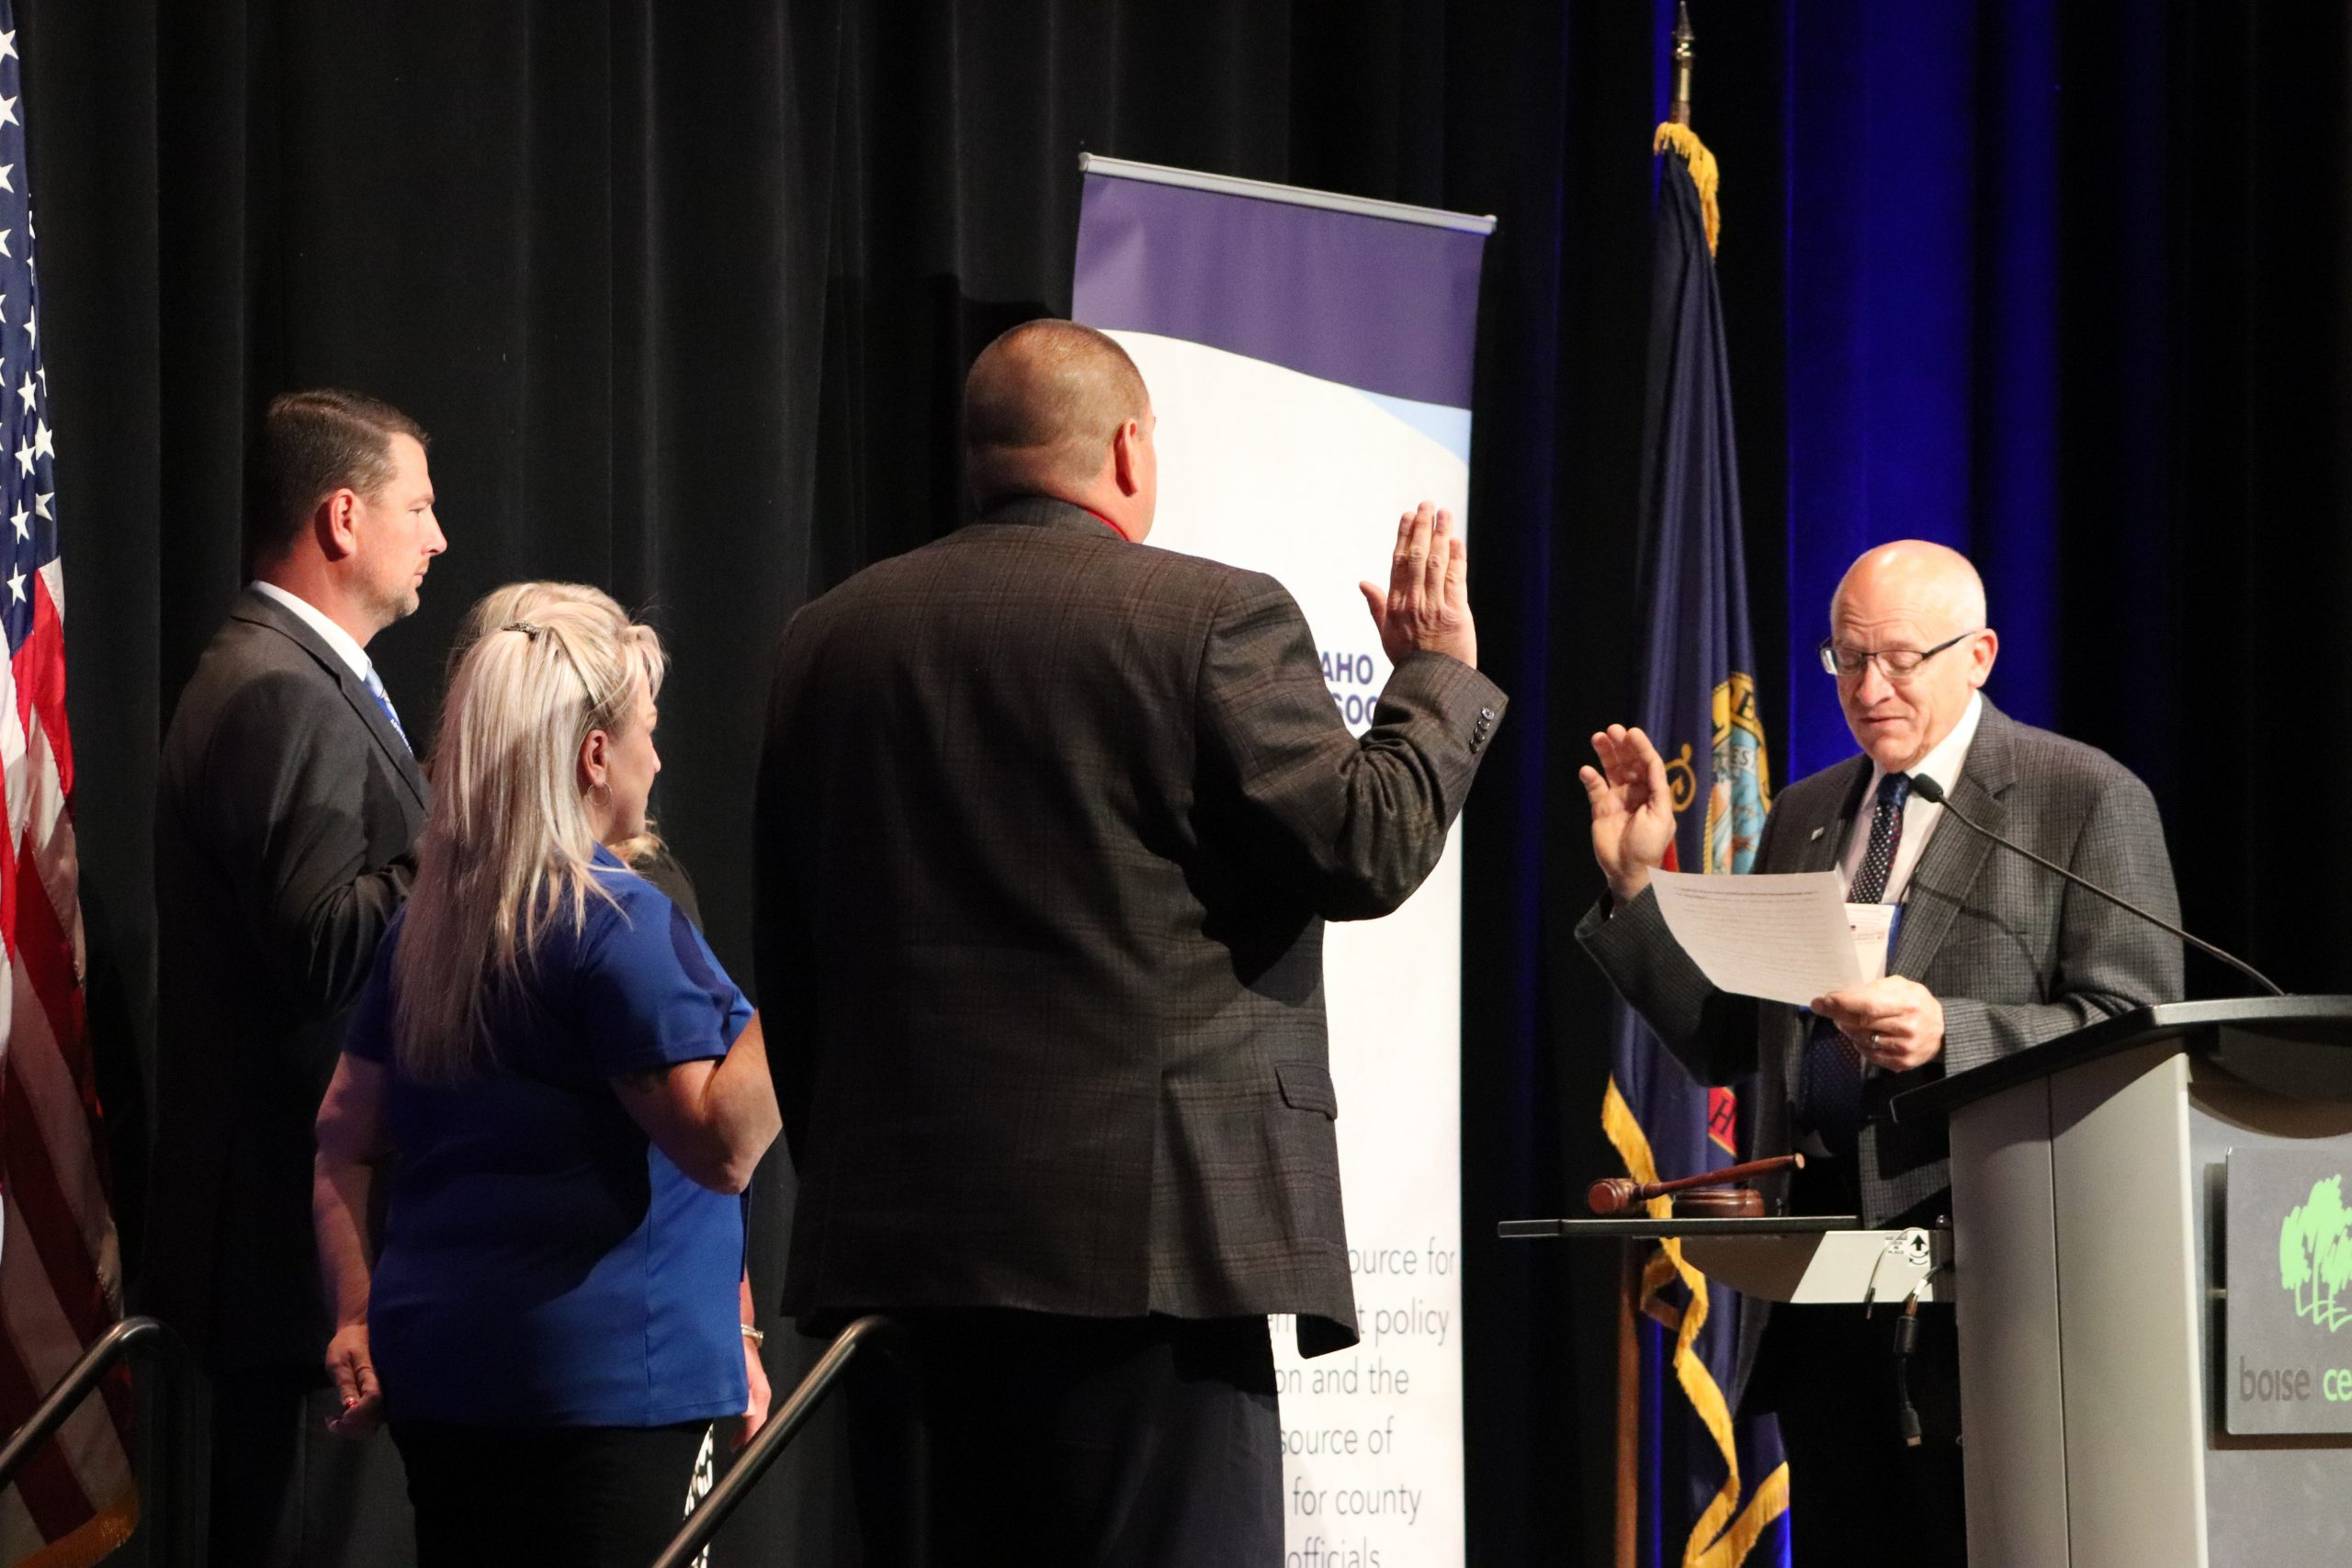 2021-2022 IAC Executive Board Members Sworn in at Annual Conference